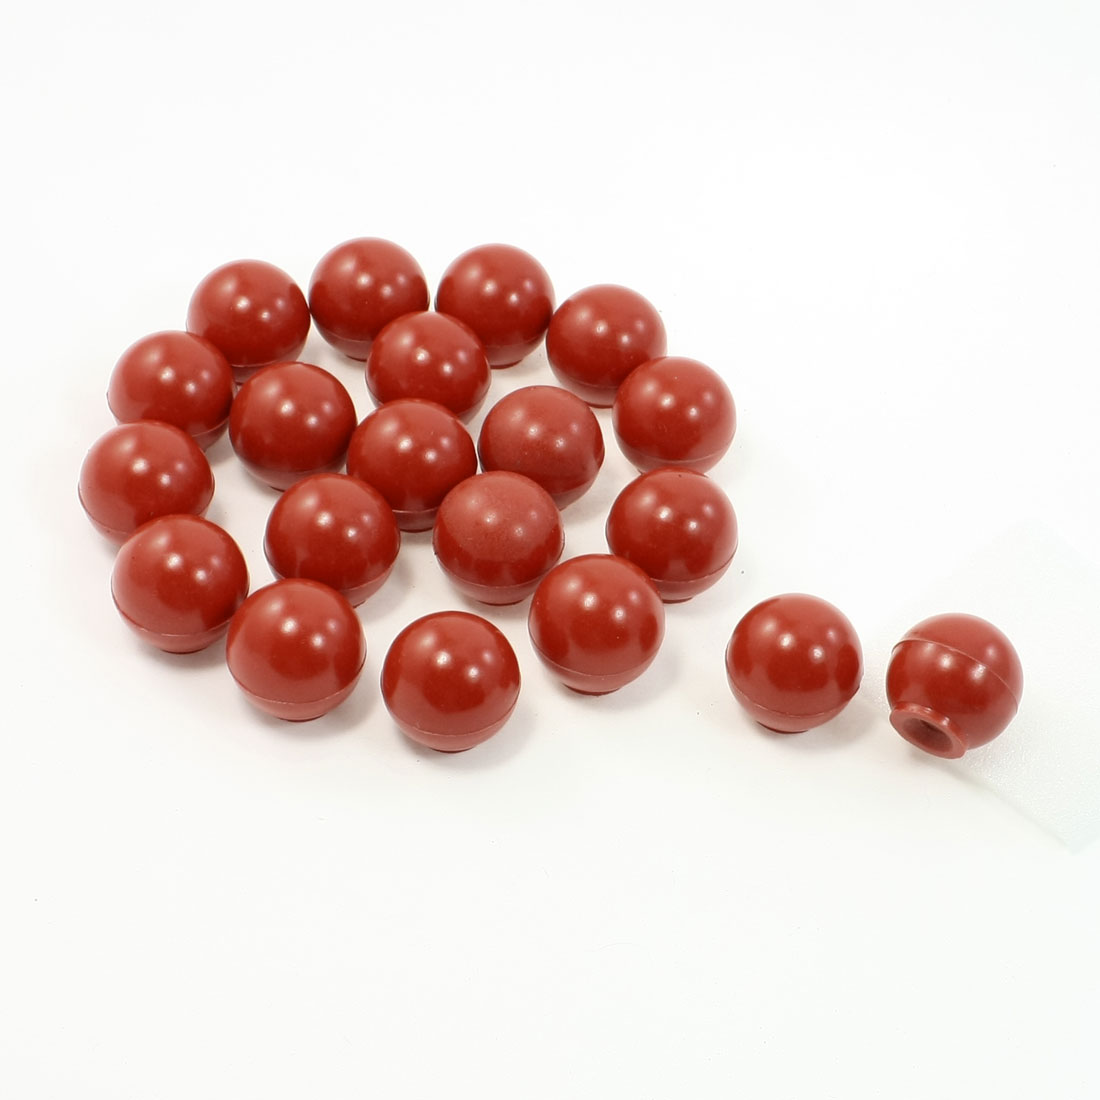 "20Pcs Red Plastic Balls Machine Tool Handle Round Knobs 1.1"" Dia 0.24"" Bore"